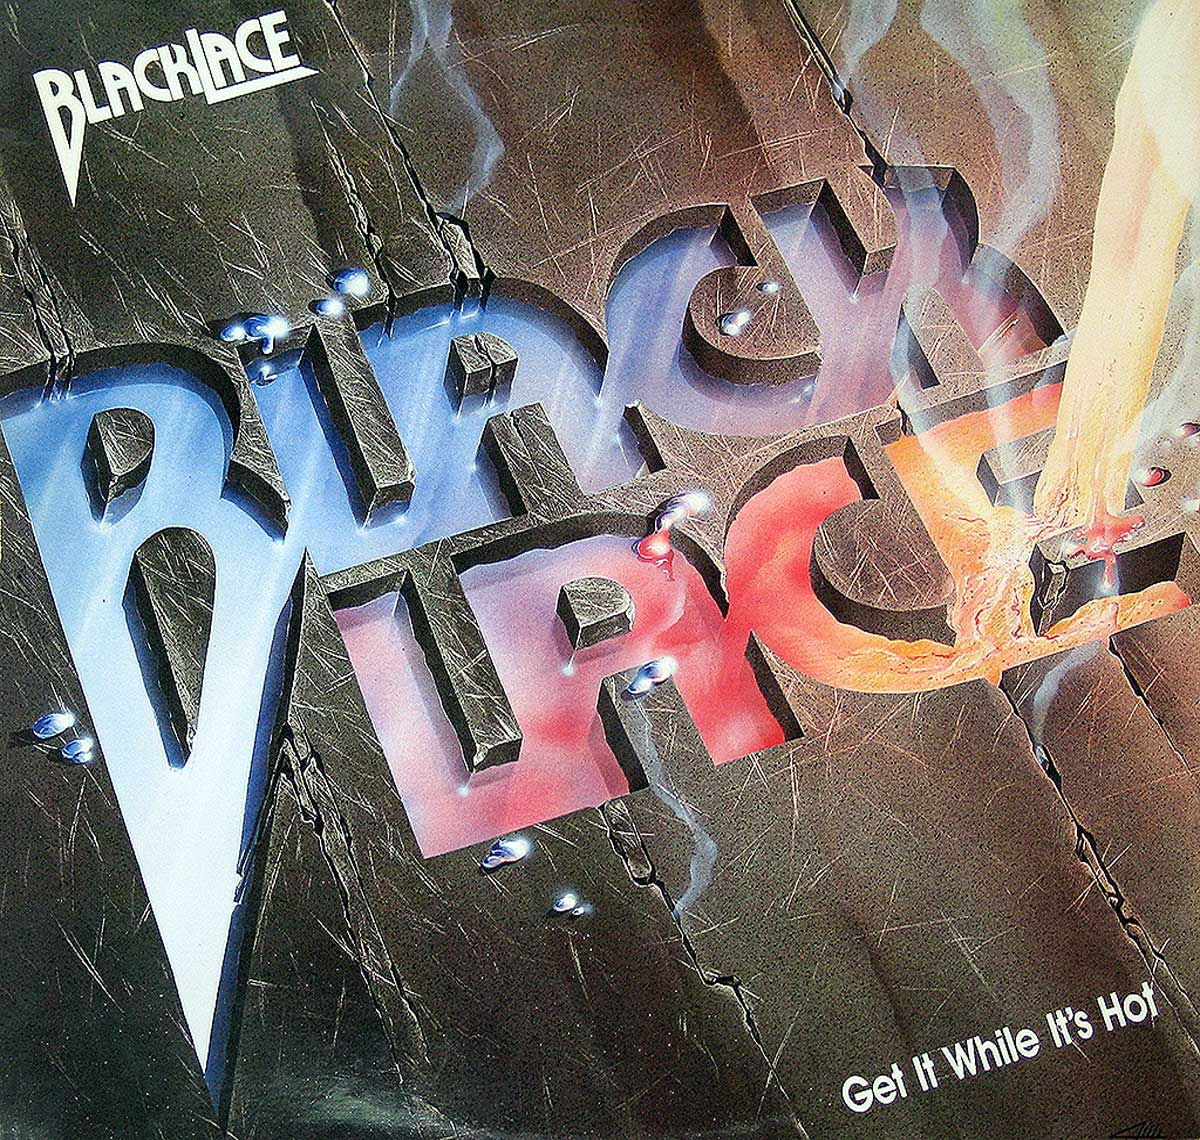 large photo of the album front cover of: BLACKLACE GET IT WHILE IT'S HOT